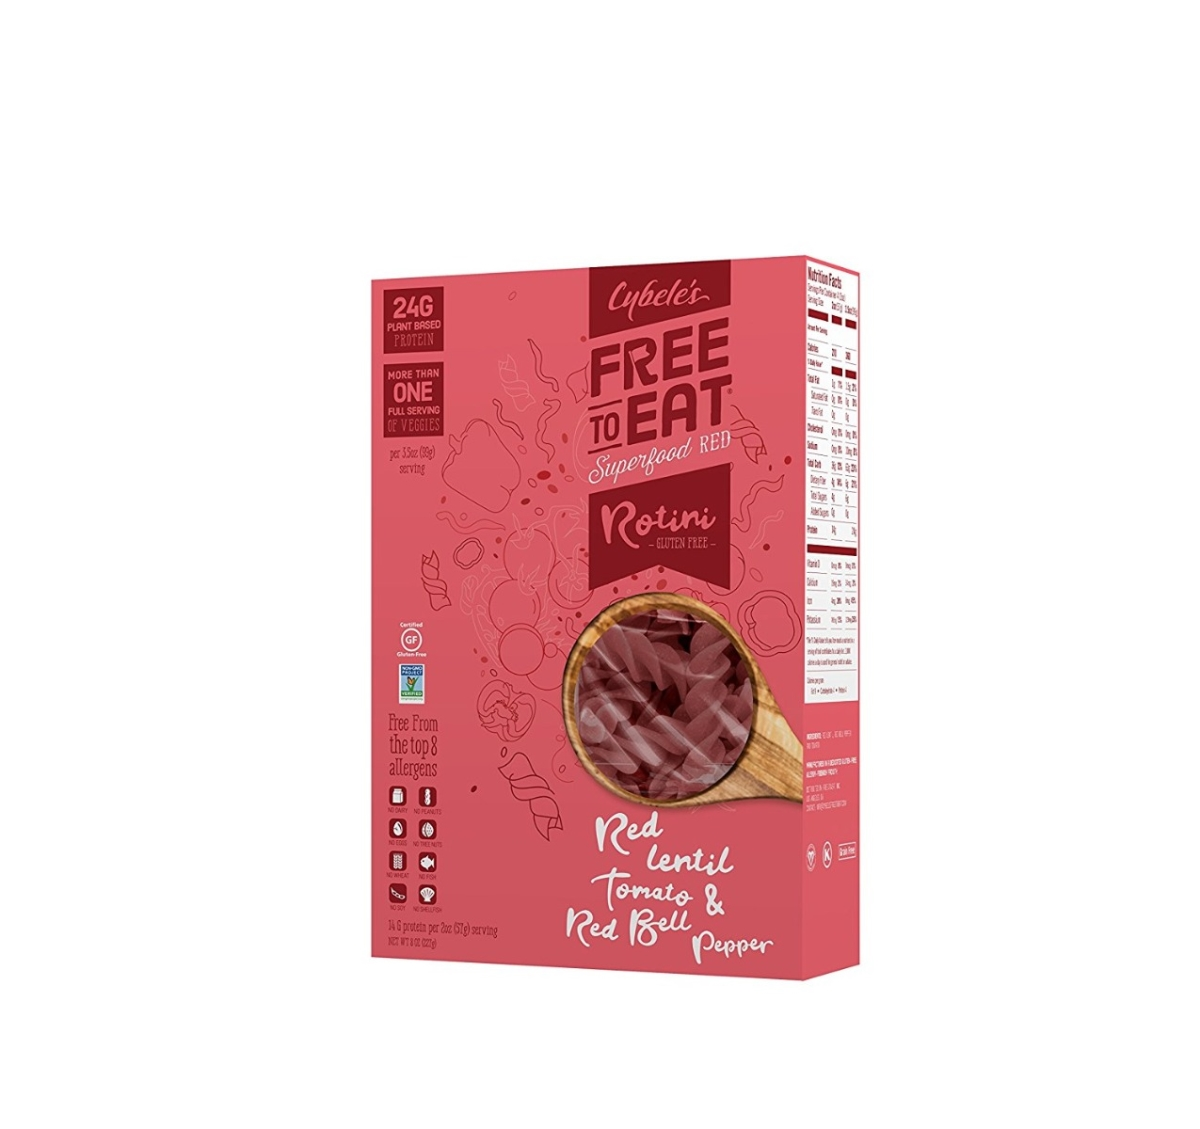 Cybeles Superfood Pasta KHFM00307940 Superfood Red Pasta - 8 oz